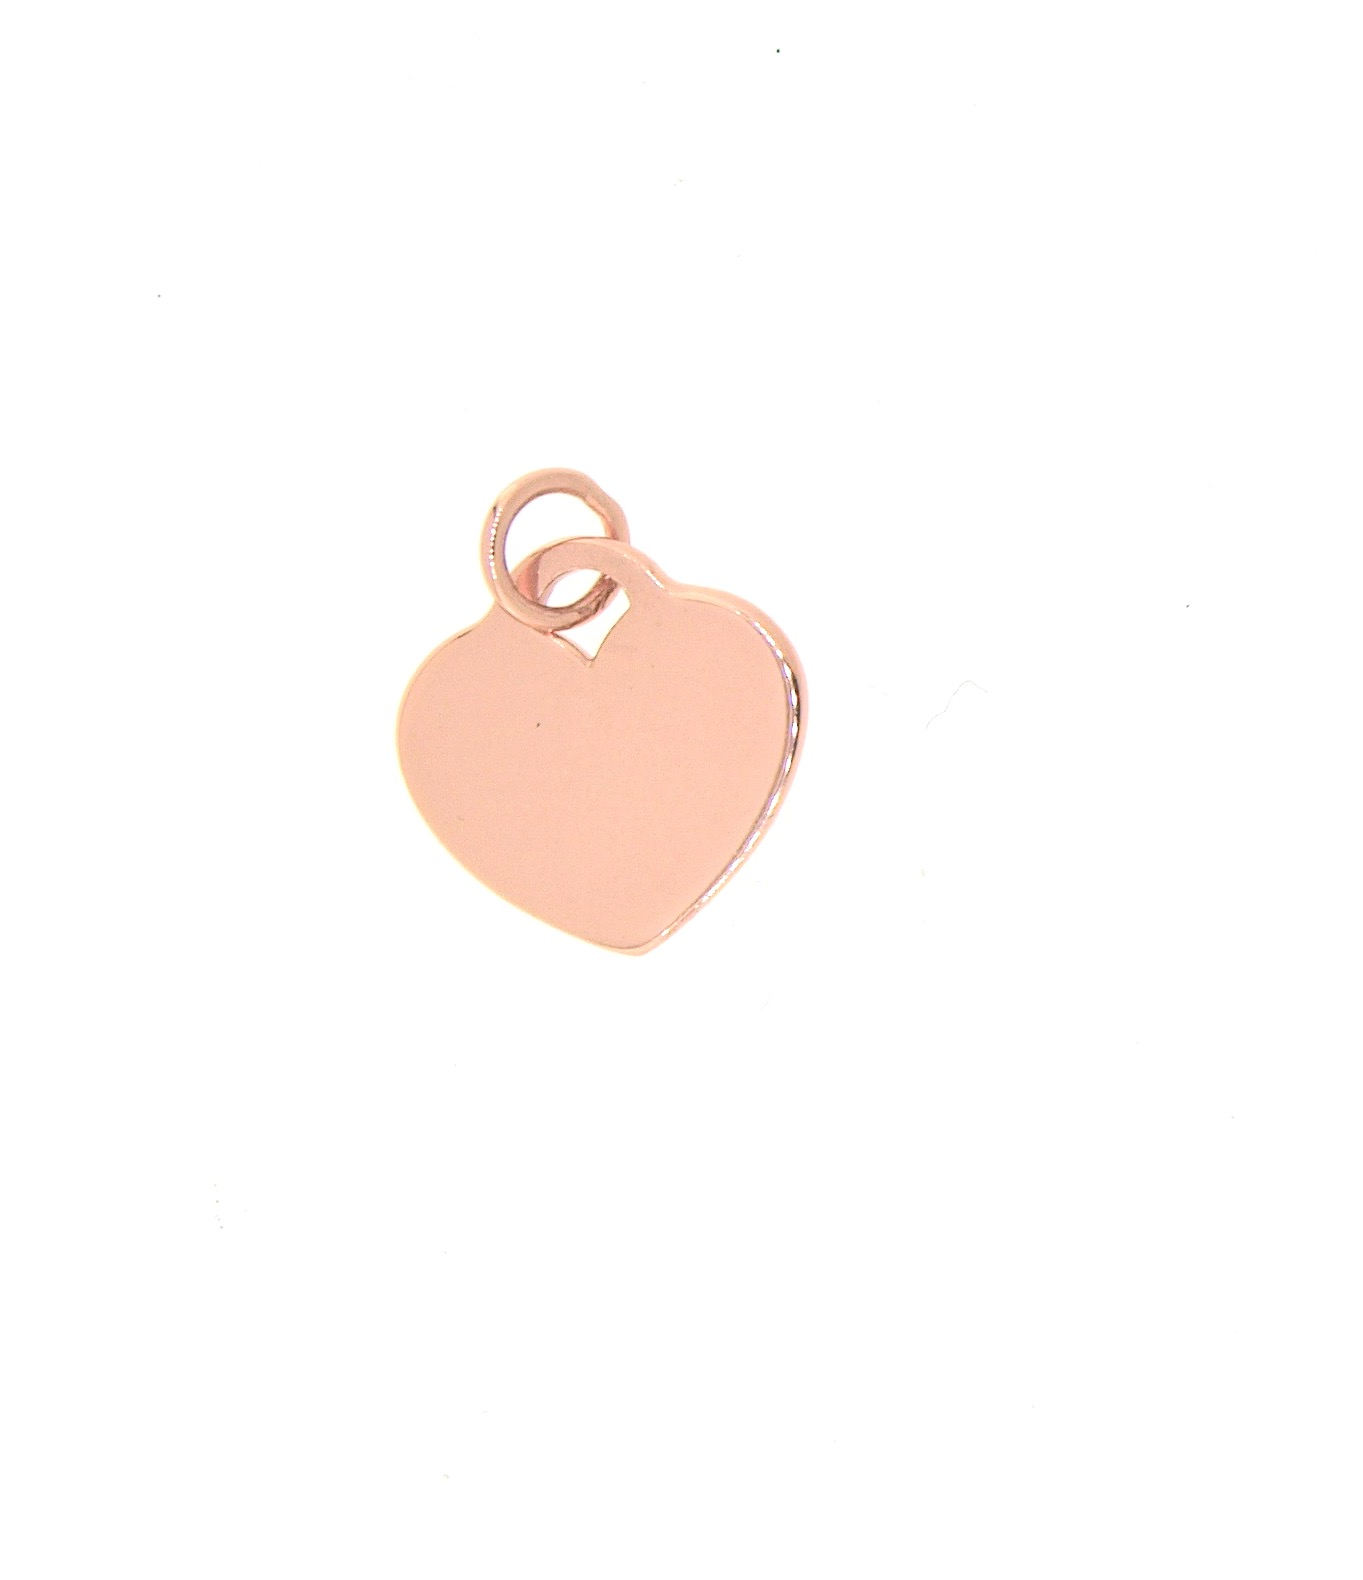 heart flat chain gold pendant necklace thin small glossy